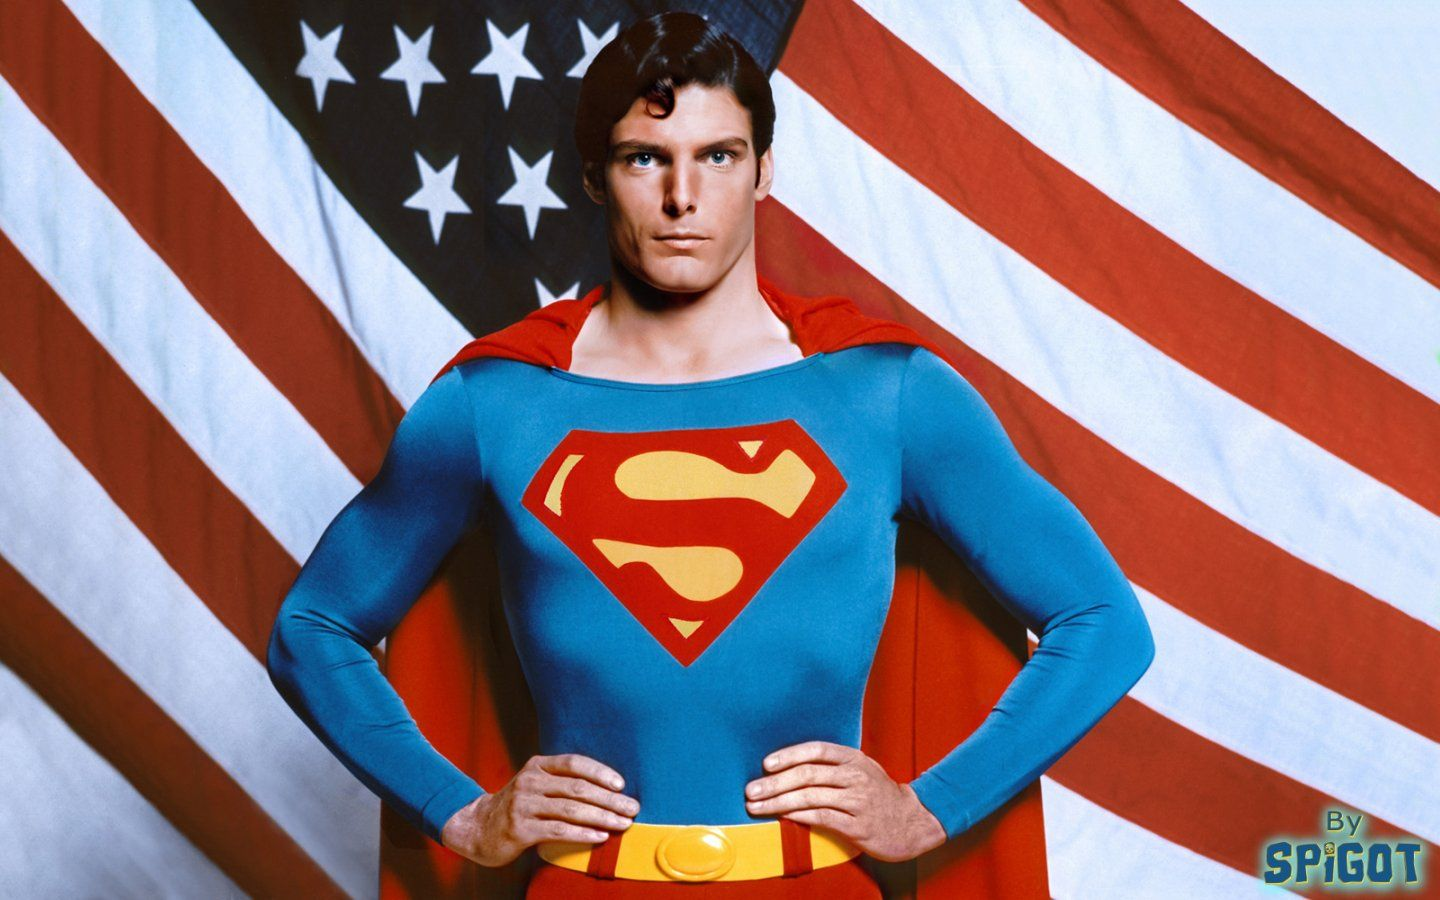 Christopher Reeve in his iconic role as Superman.